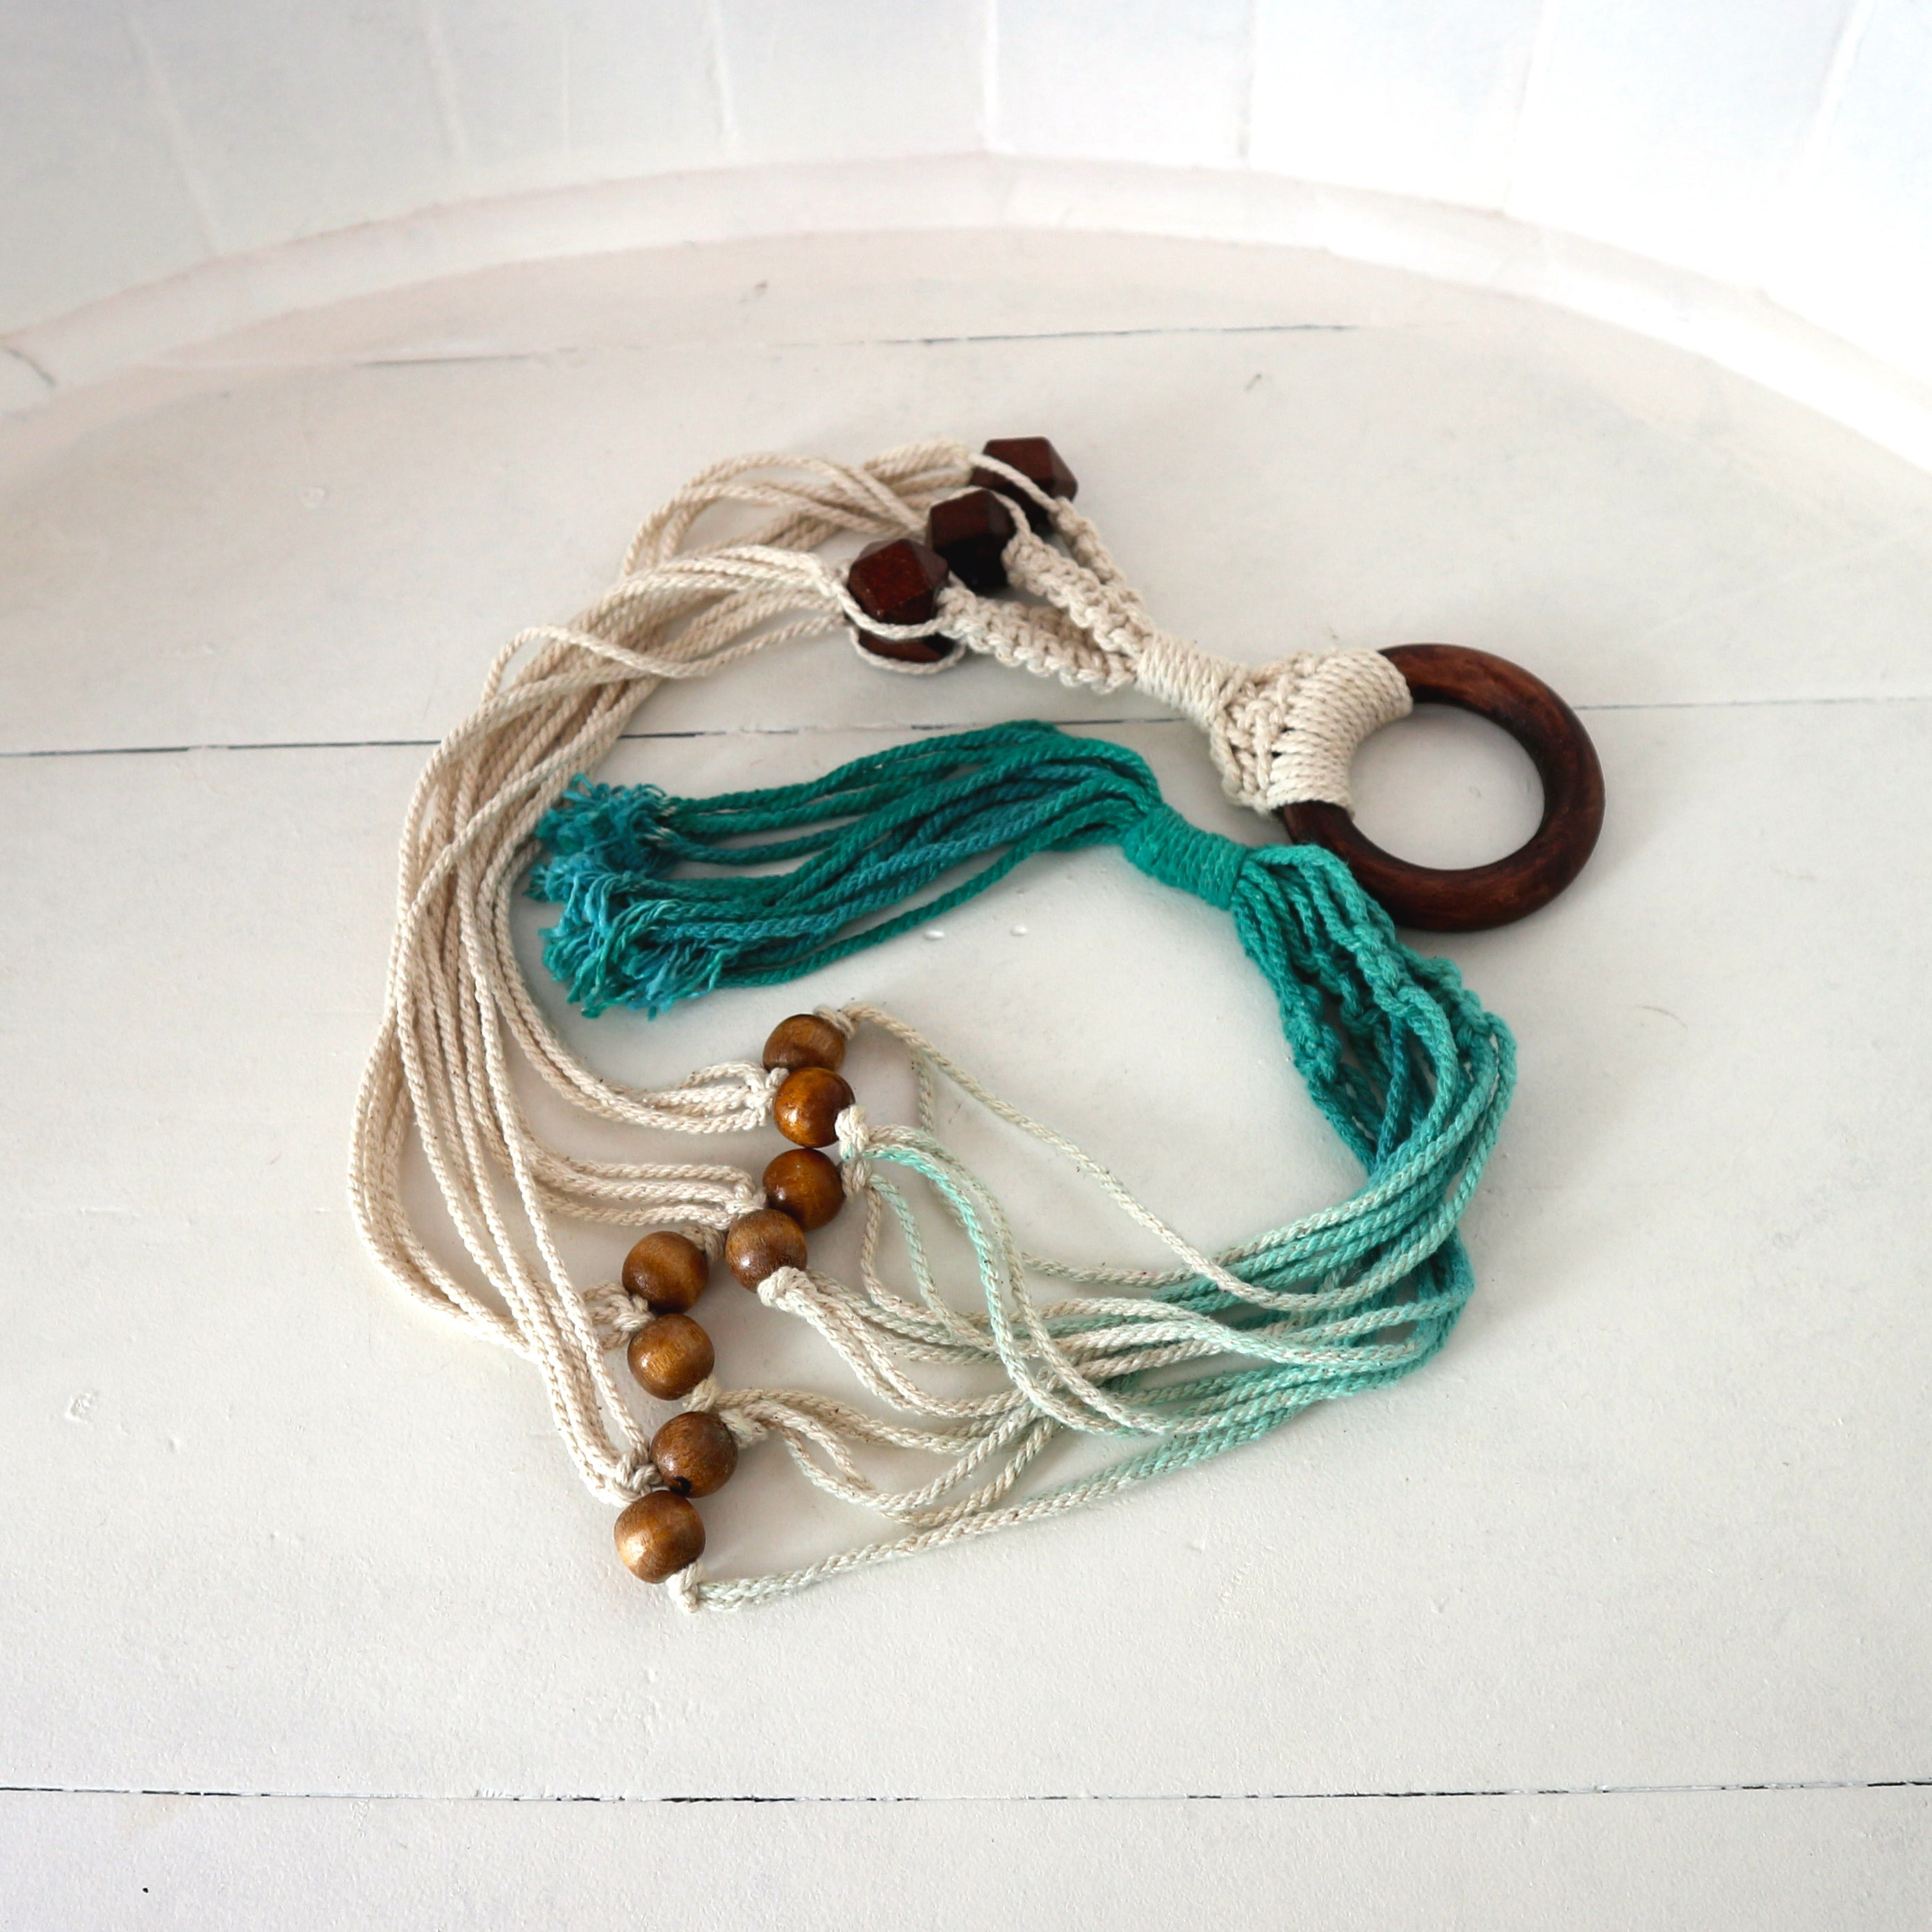 Turquoise Beaded Macramé Plant Holder